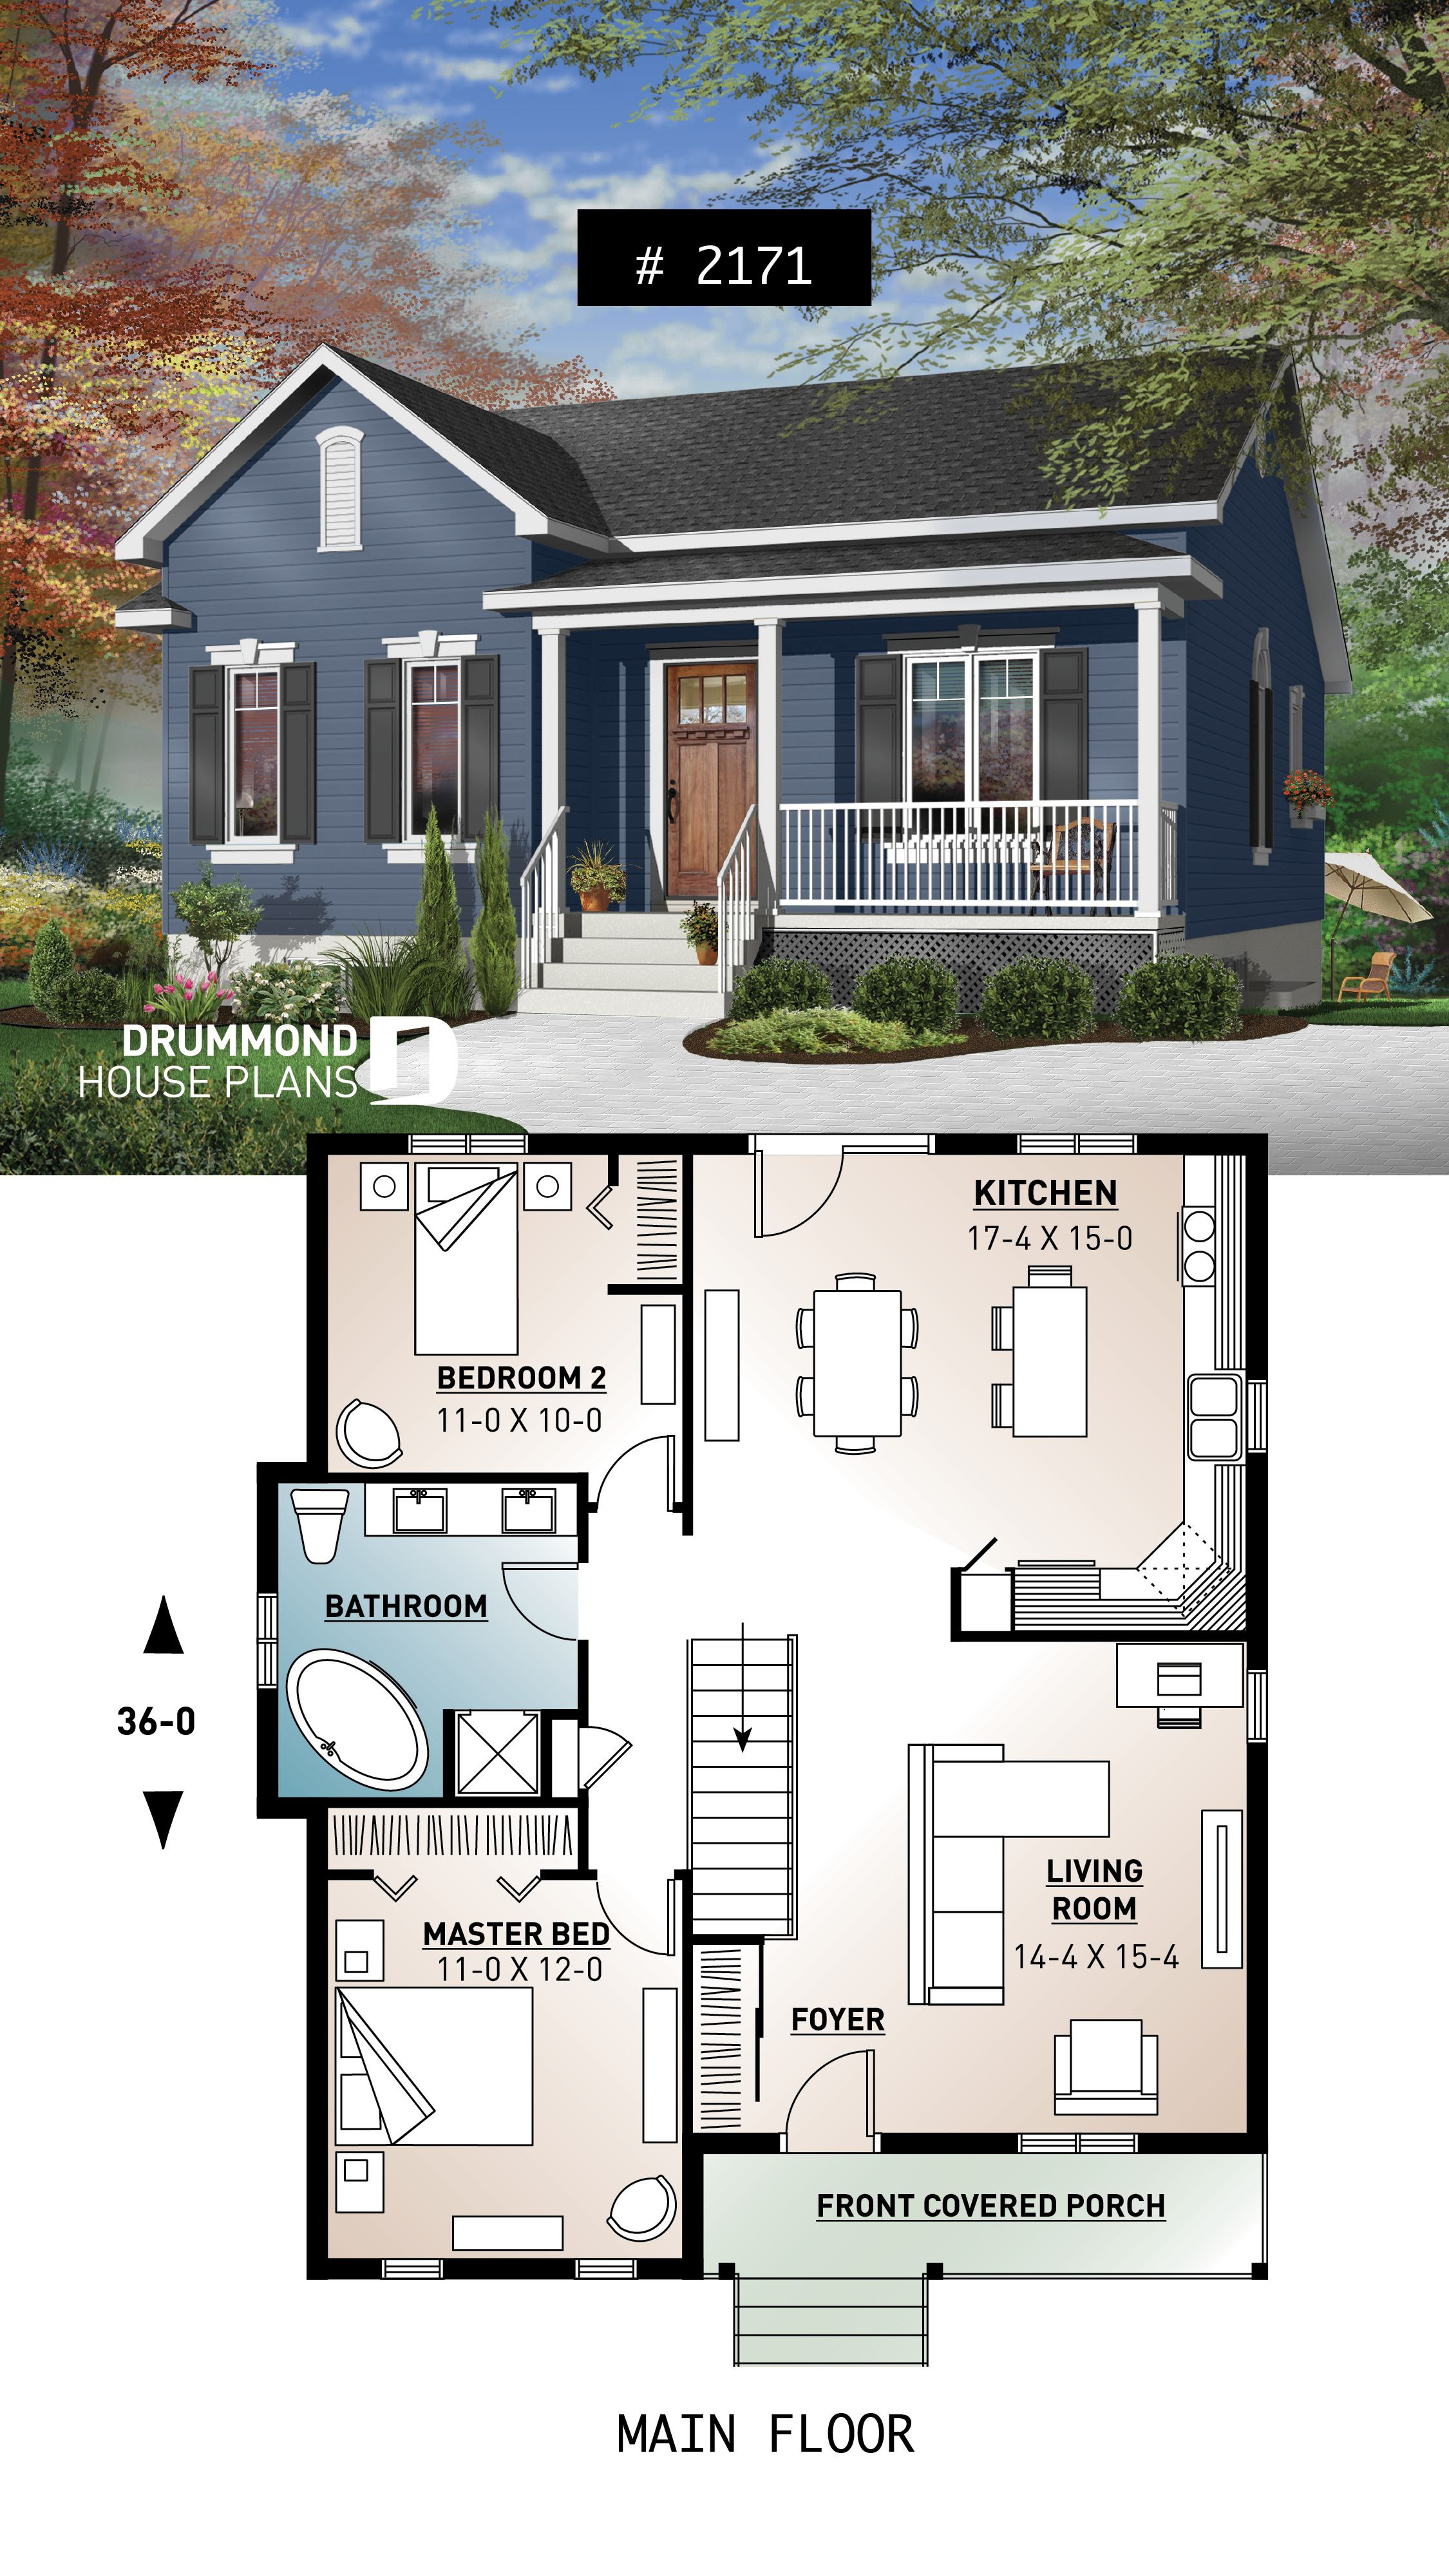 Building Plans for Small Houses Lovely House Plan Kara No 2171